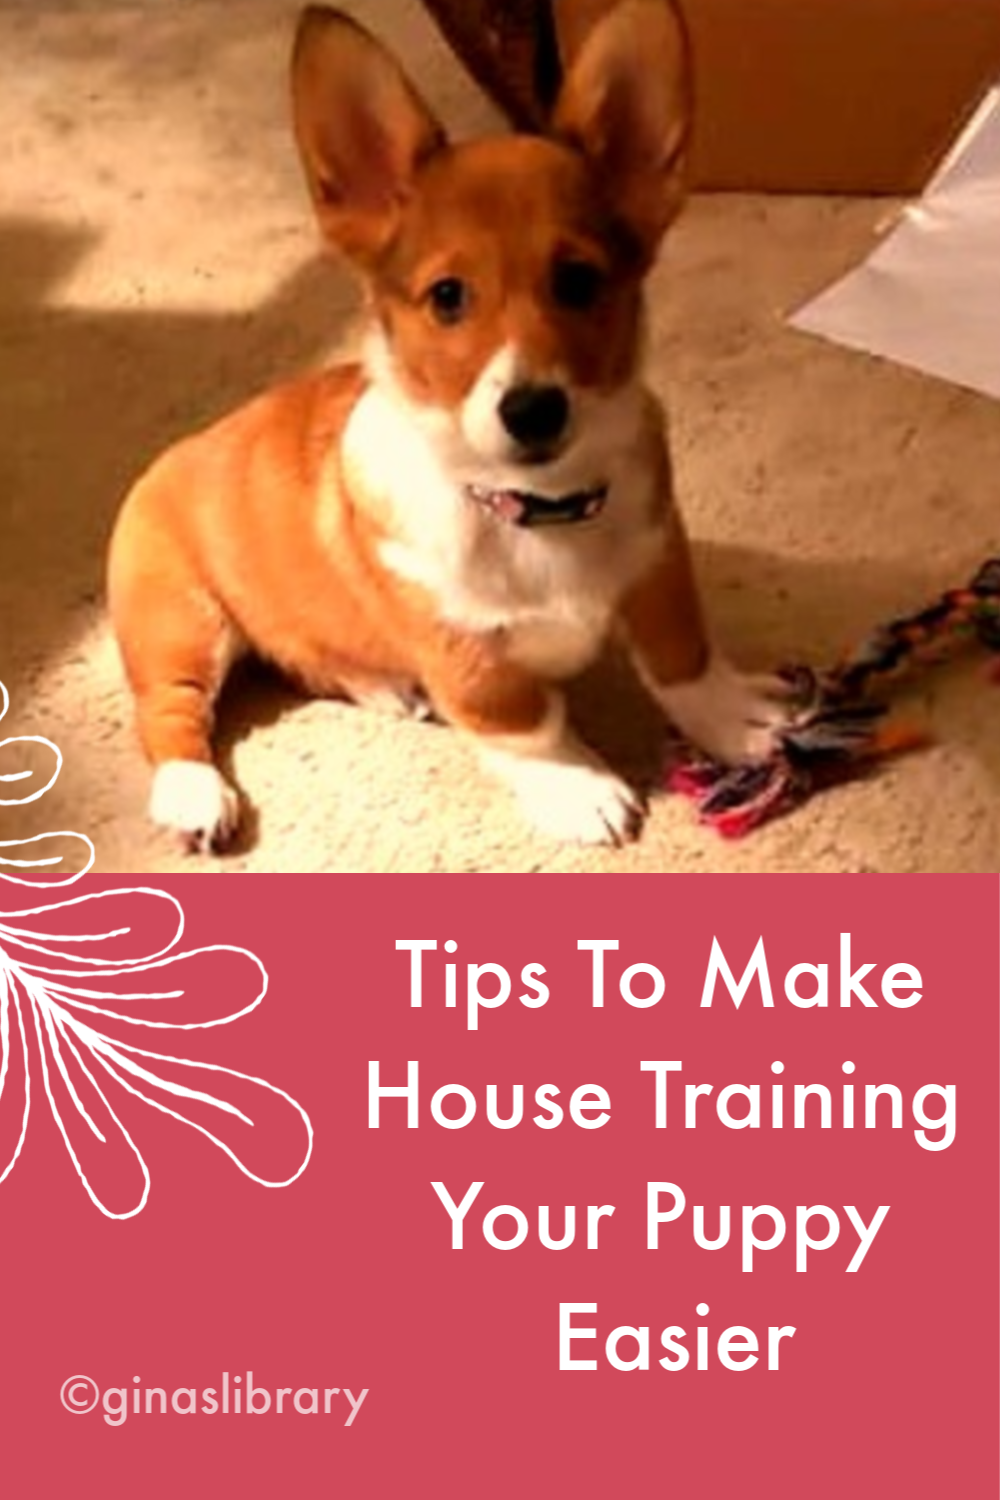 Tips To Make House Training Your Puppy Easier Training Your